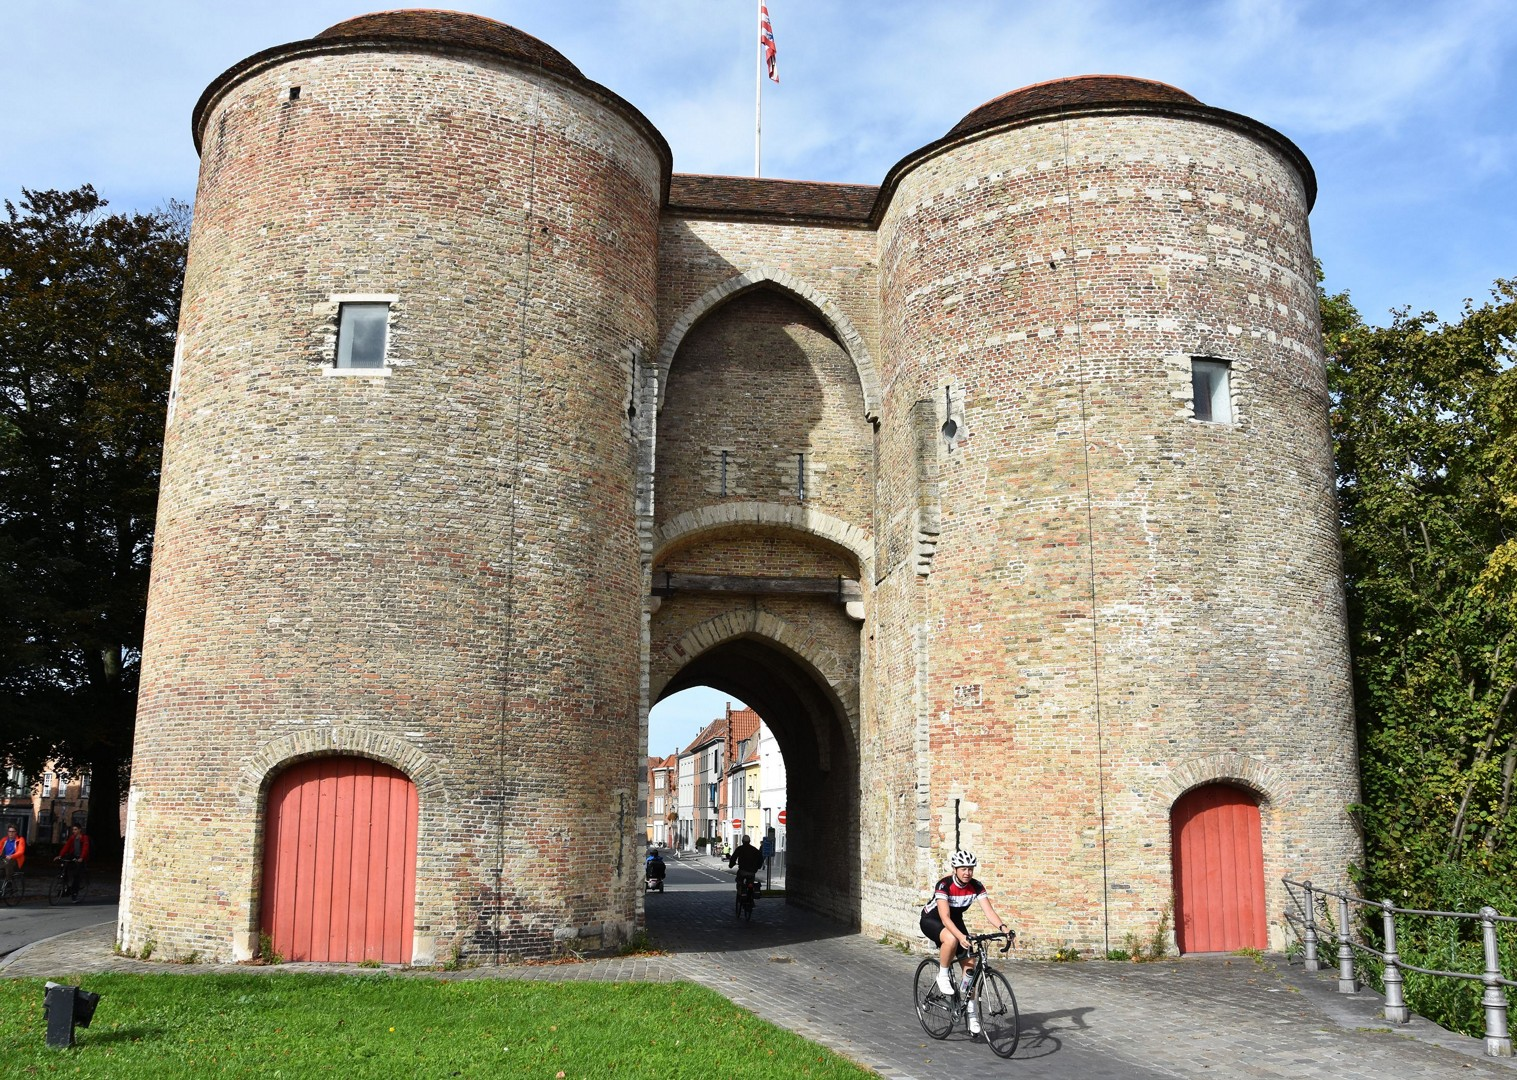 burgundy-guided-road-cycling-holiday-belgium-and-france-bruges-to-bordeaux.JPG - Belgium and France - Bruges to Bordeaux - Guided Road Cycling Holiday - Road Cycling